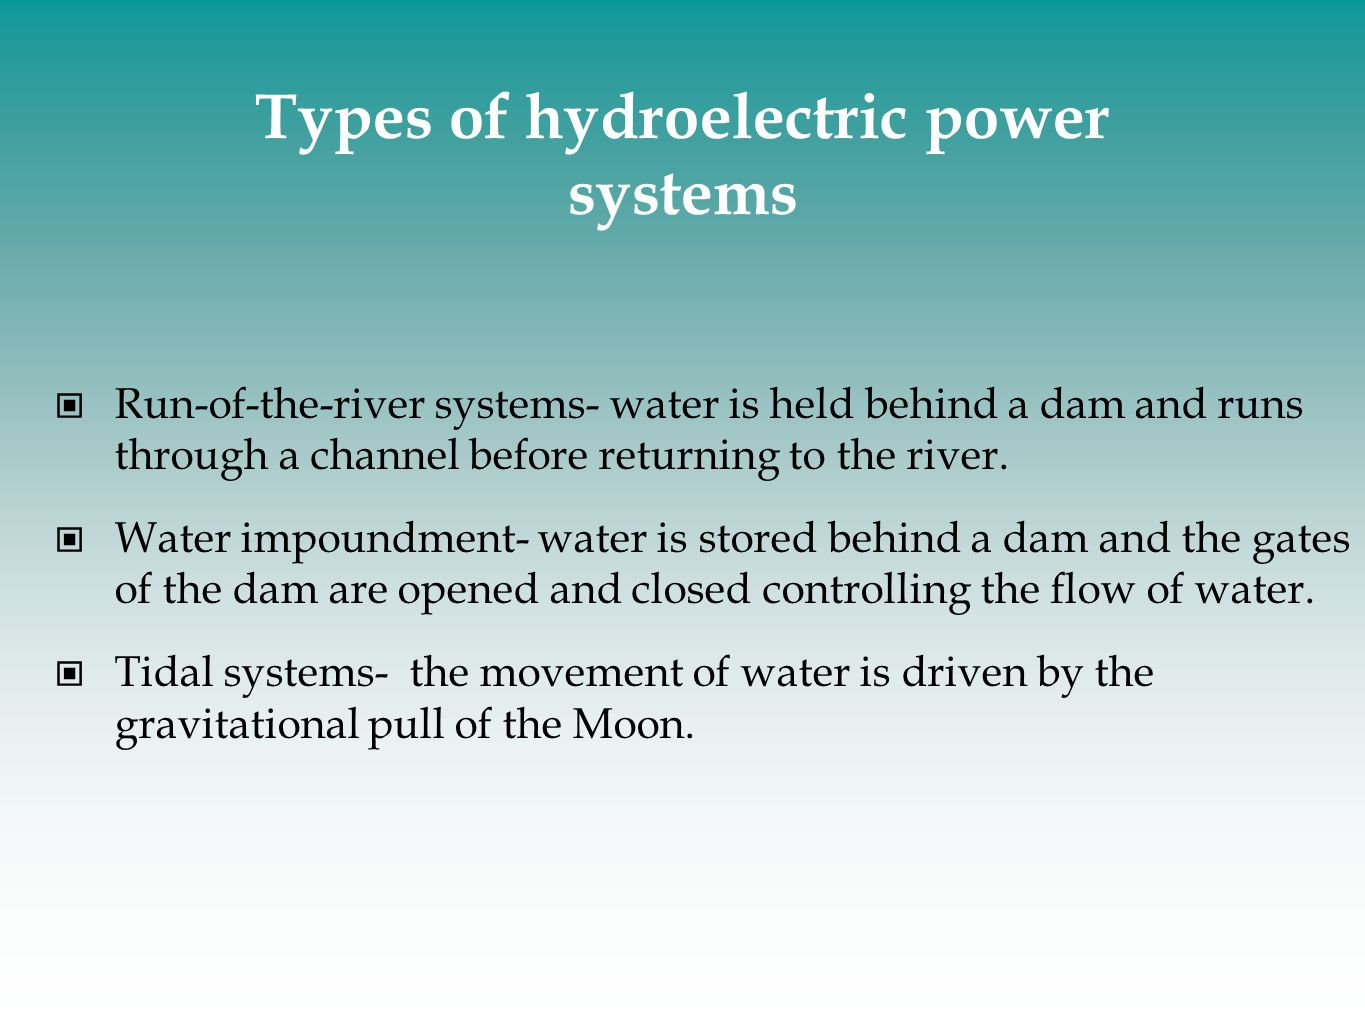 Types of hydroelectric power systems